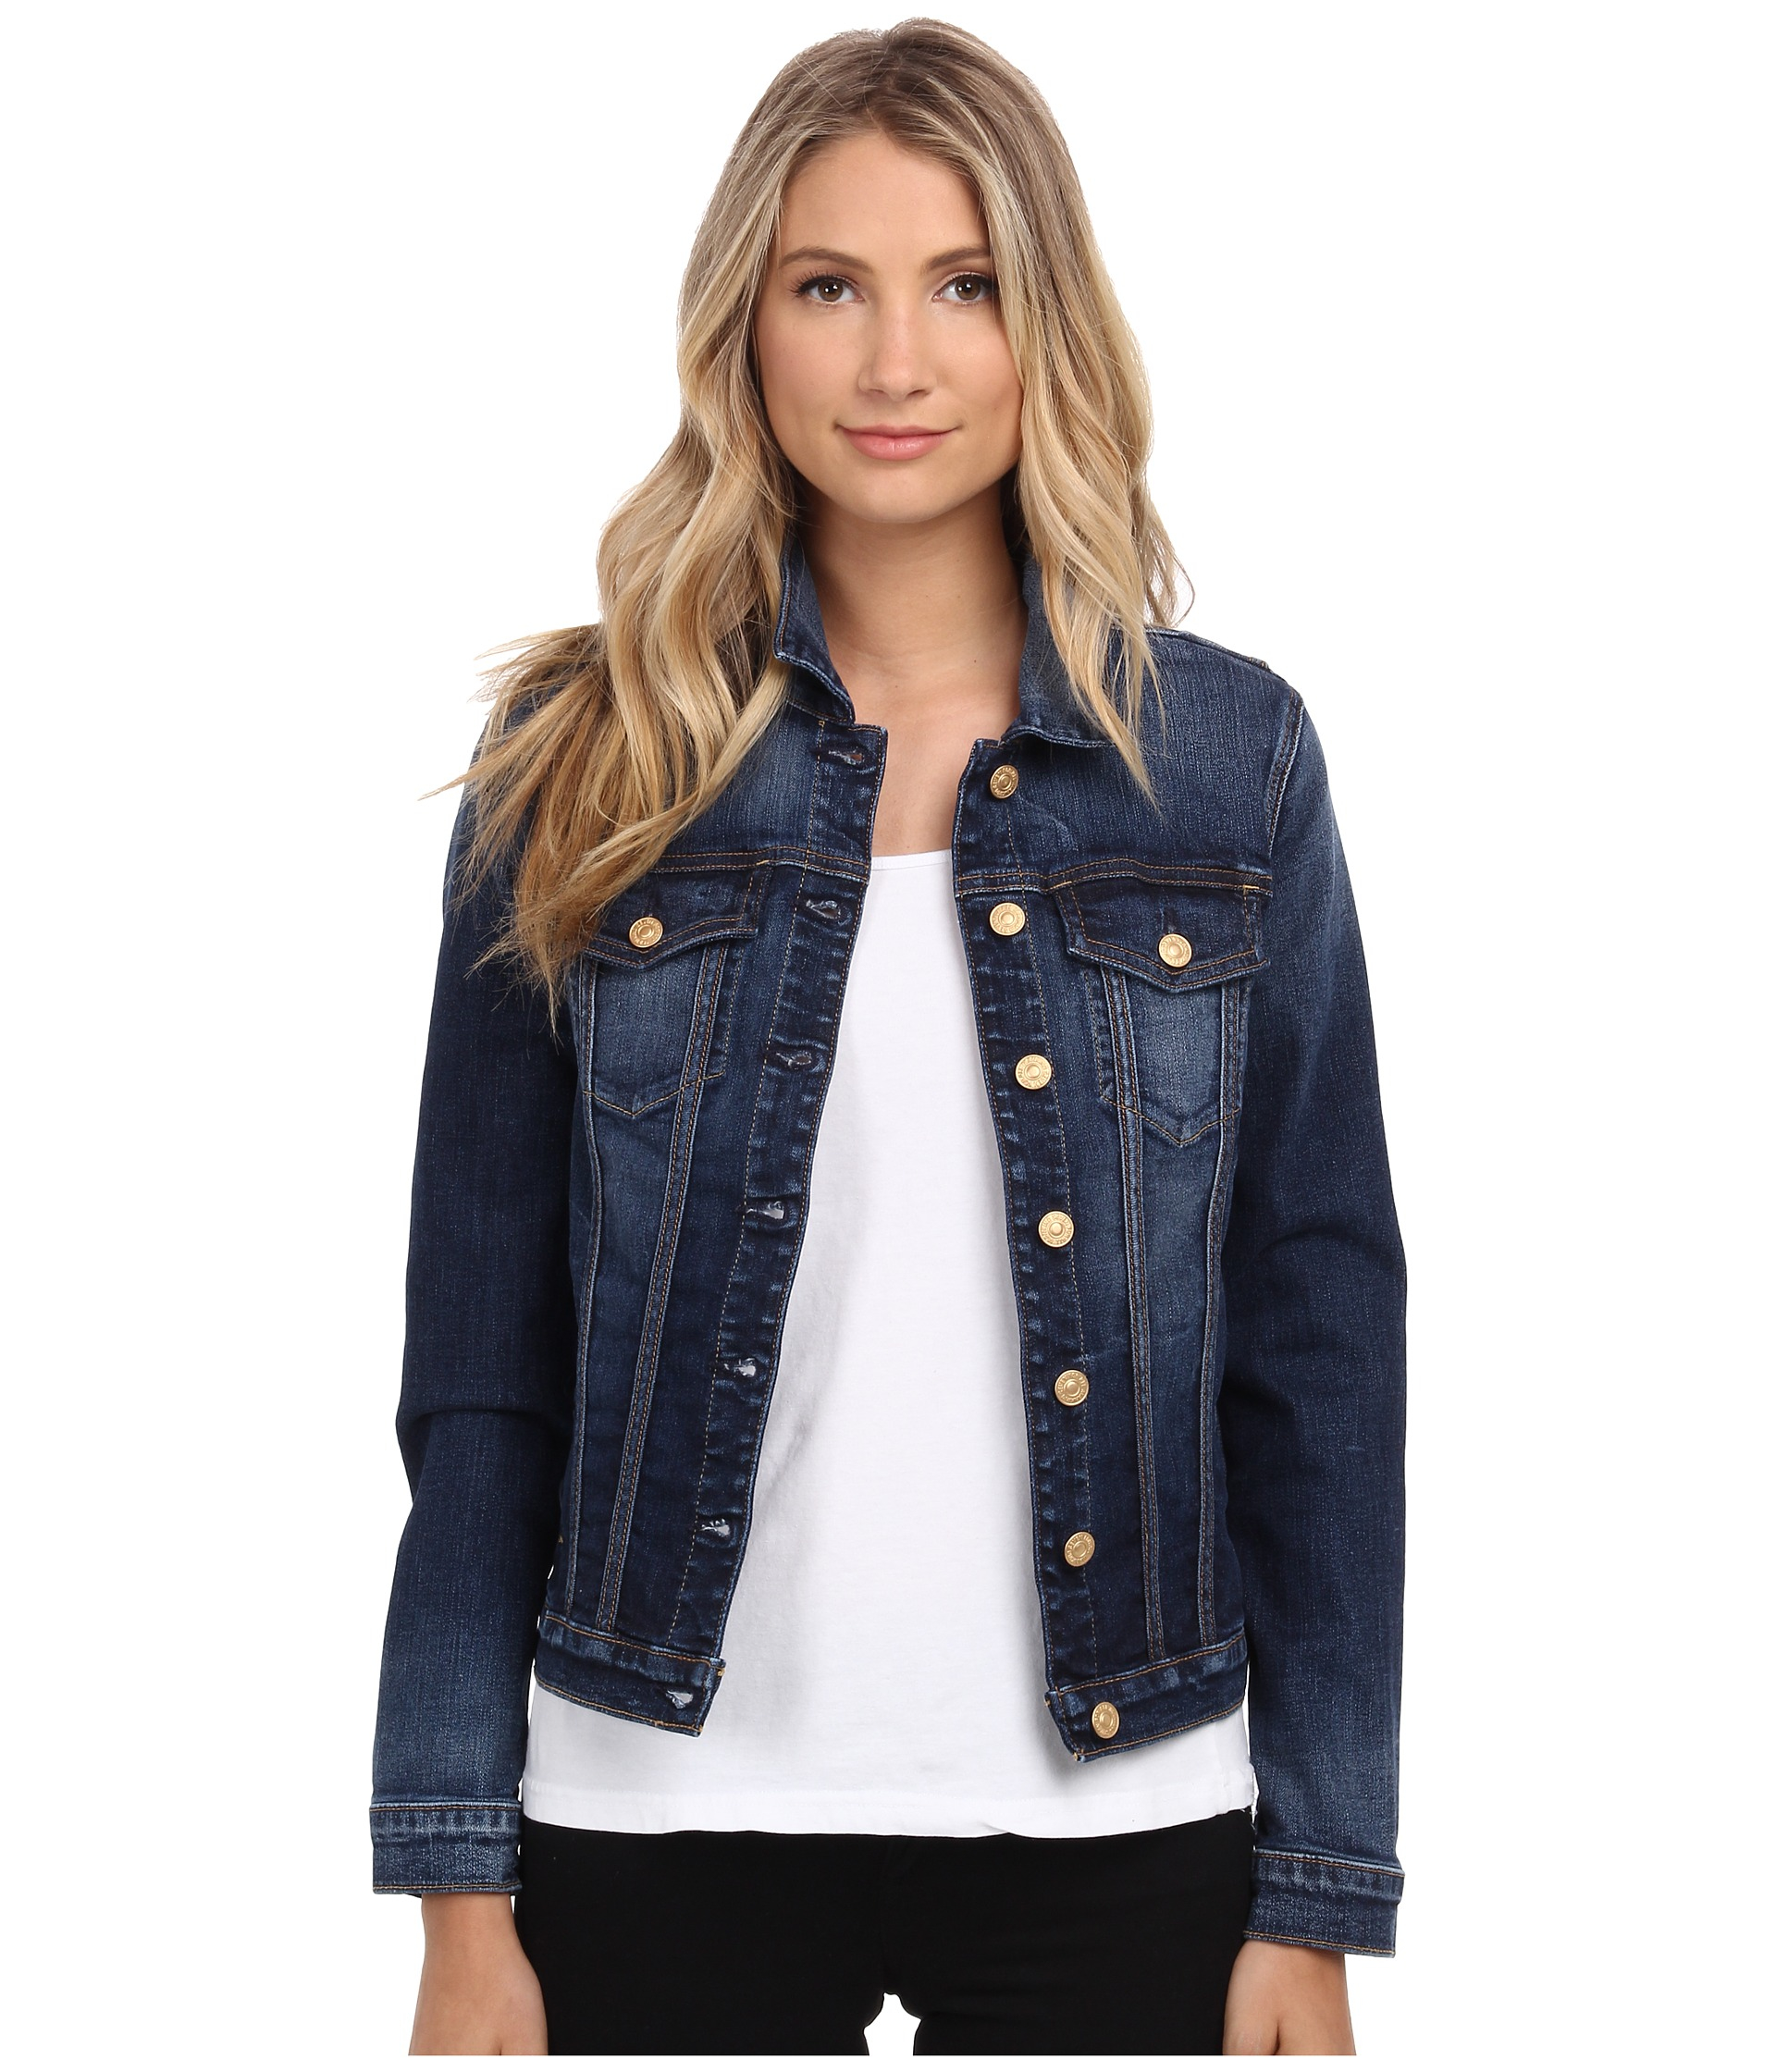 lyst 7 for all mankind classic denim jacket in blue